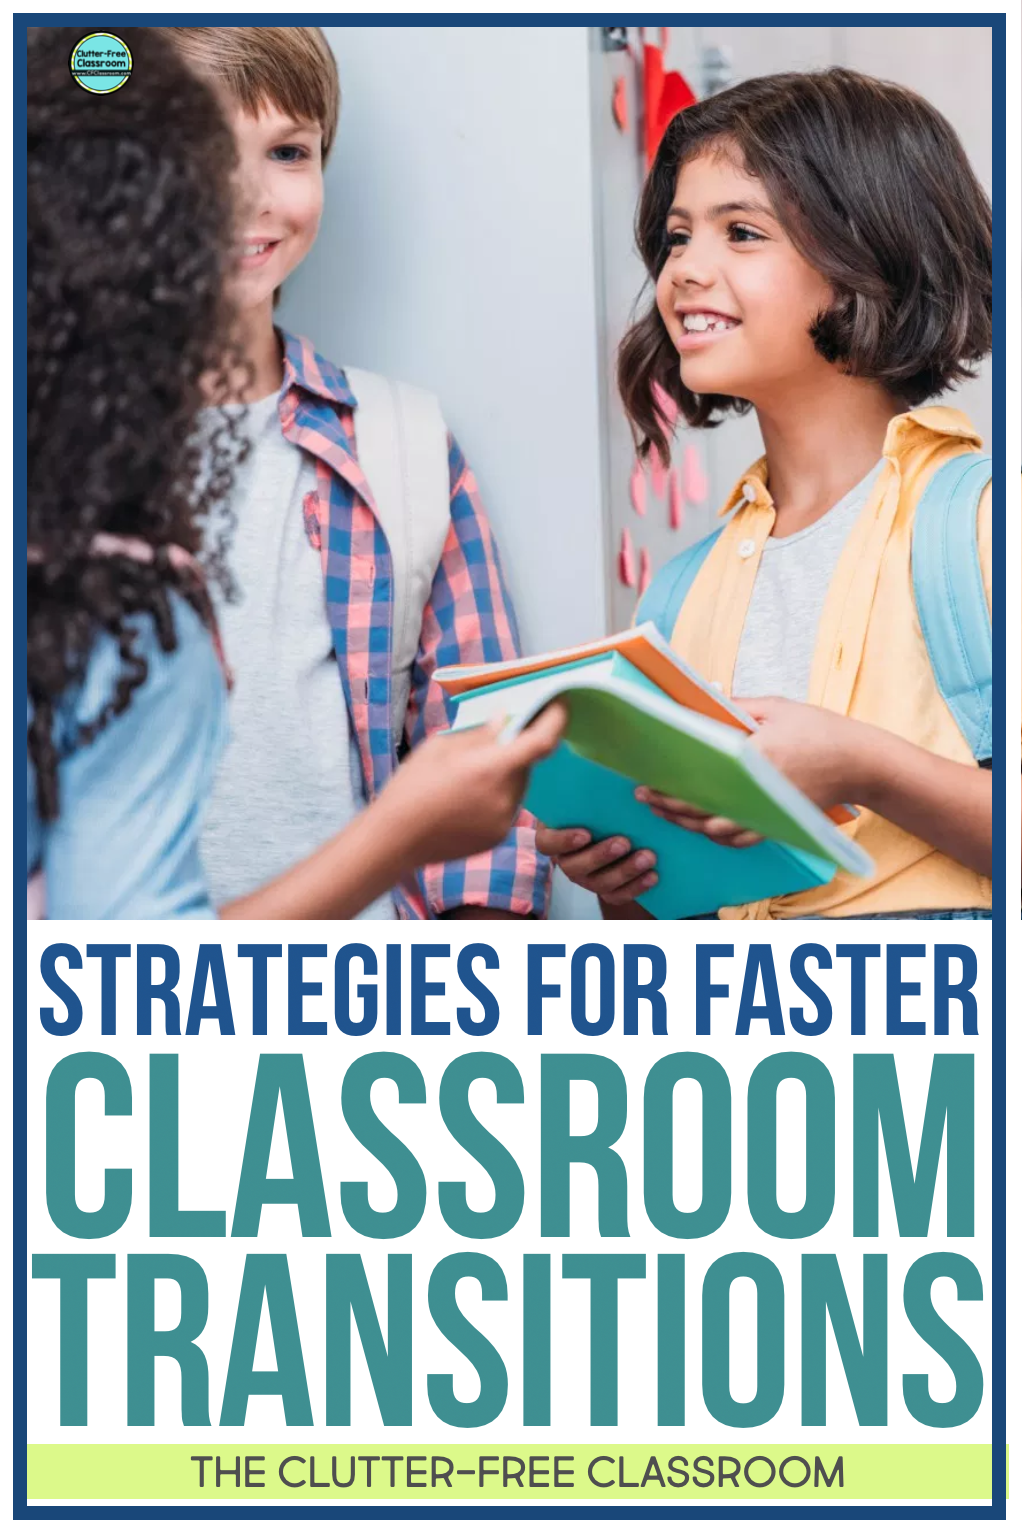 Check out these fun and easy classroom management tips and strategies for quick classroom transitions from the Clutter Free Classroom. Teachers and students will love teaching and learning these songs, procedures, and routines.